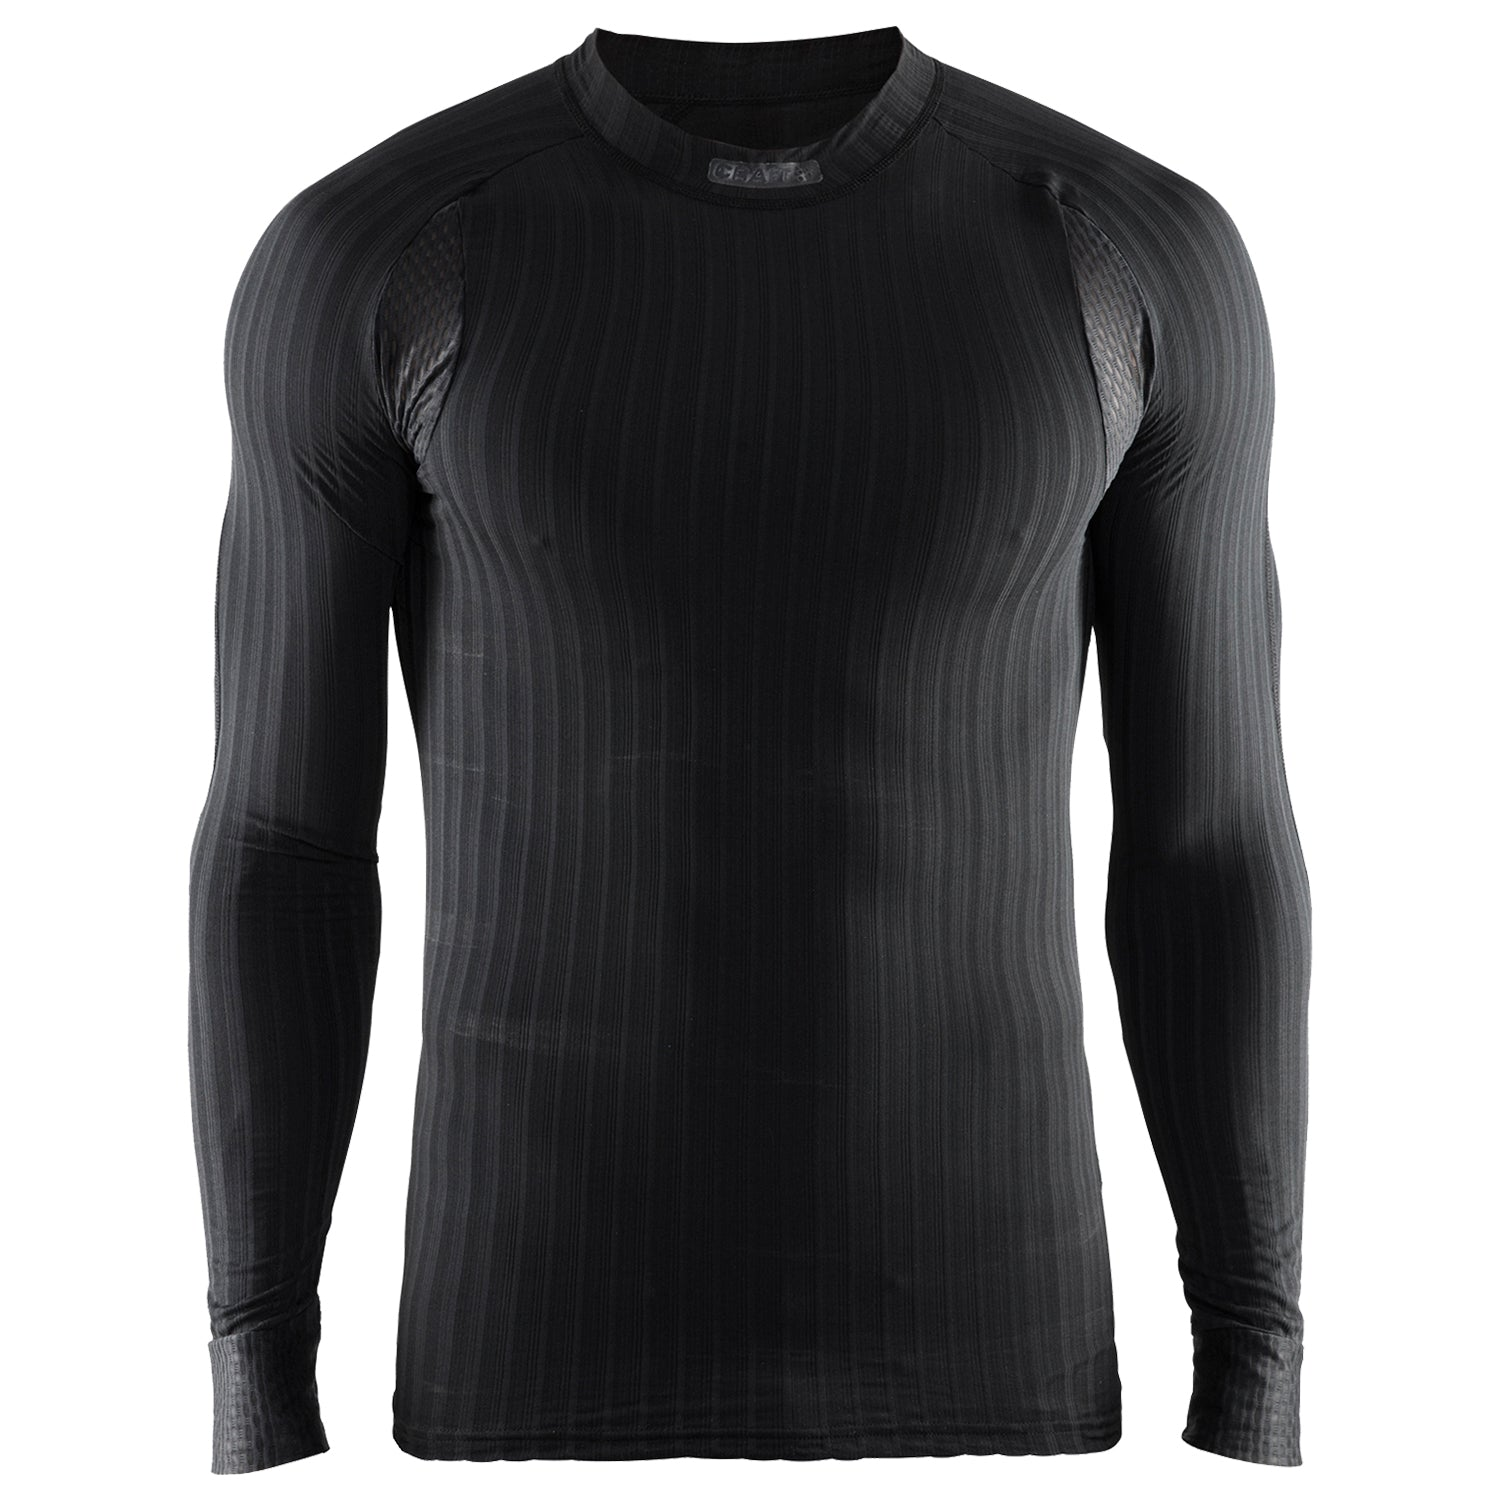 Craft Active Extreme 2.0 CN Men's Long Sleeve Baselayer